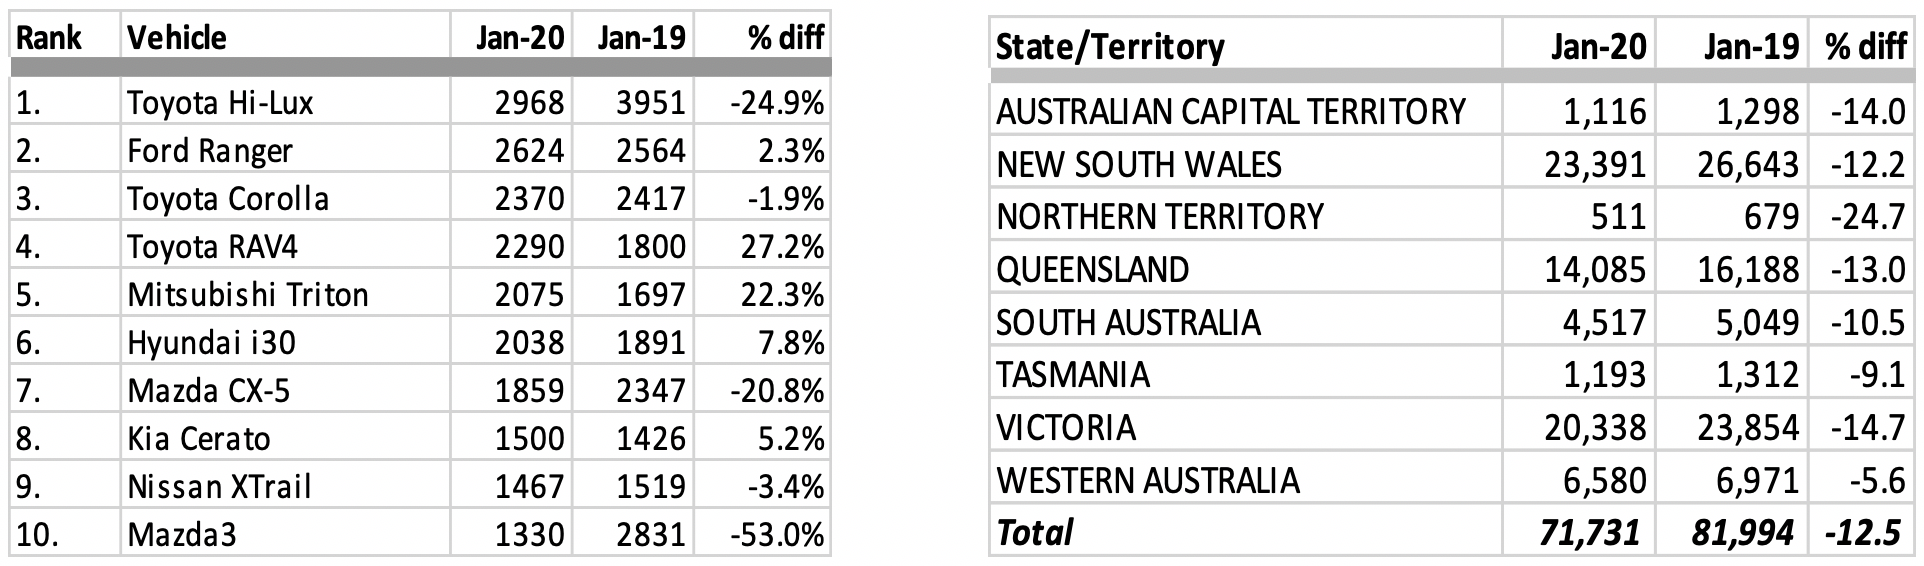 VFACT JAN 2020 RESULTS BY MODEL/STATE